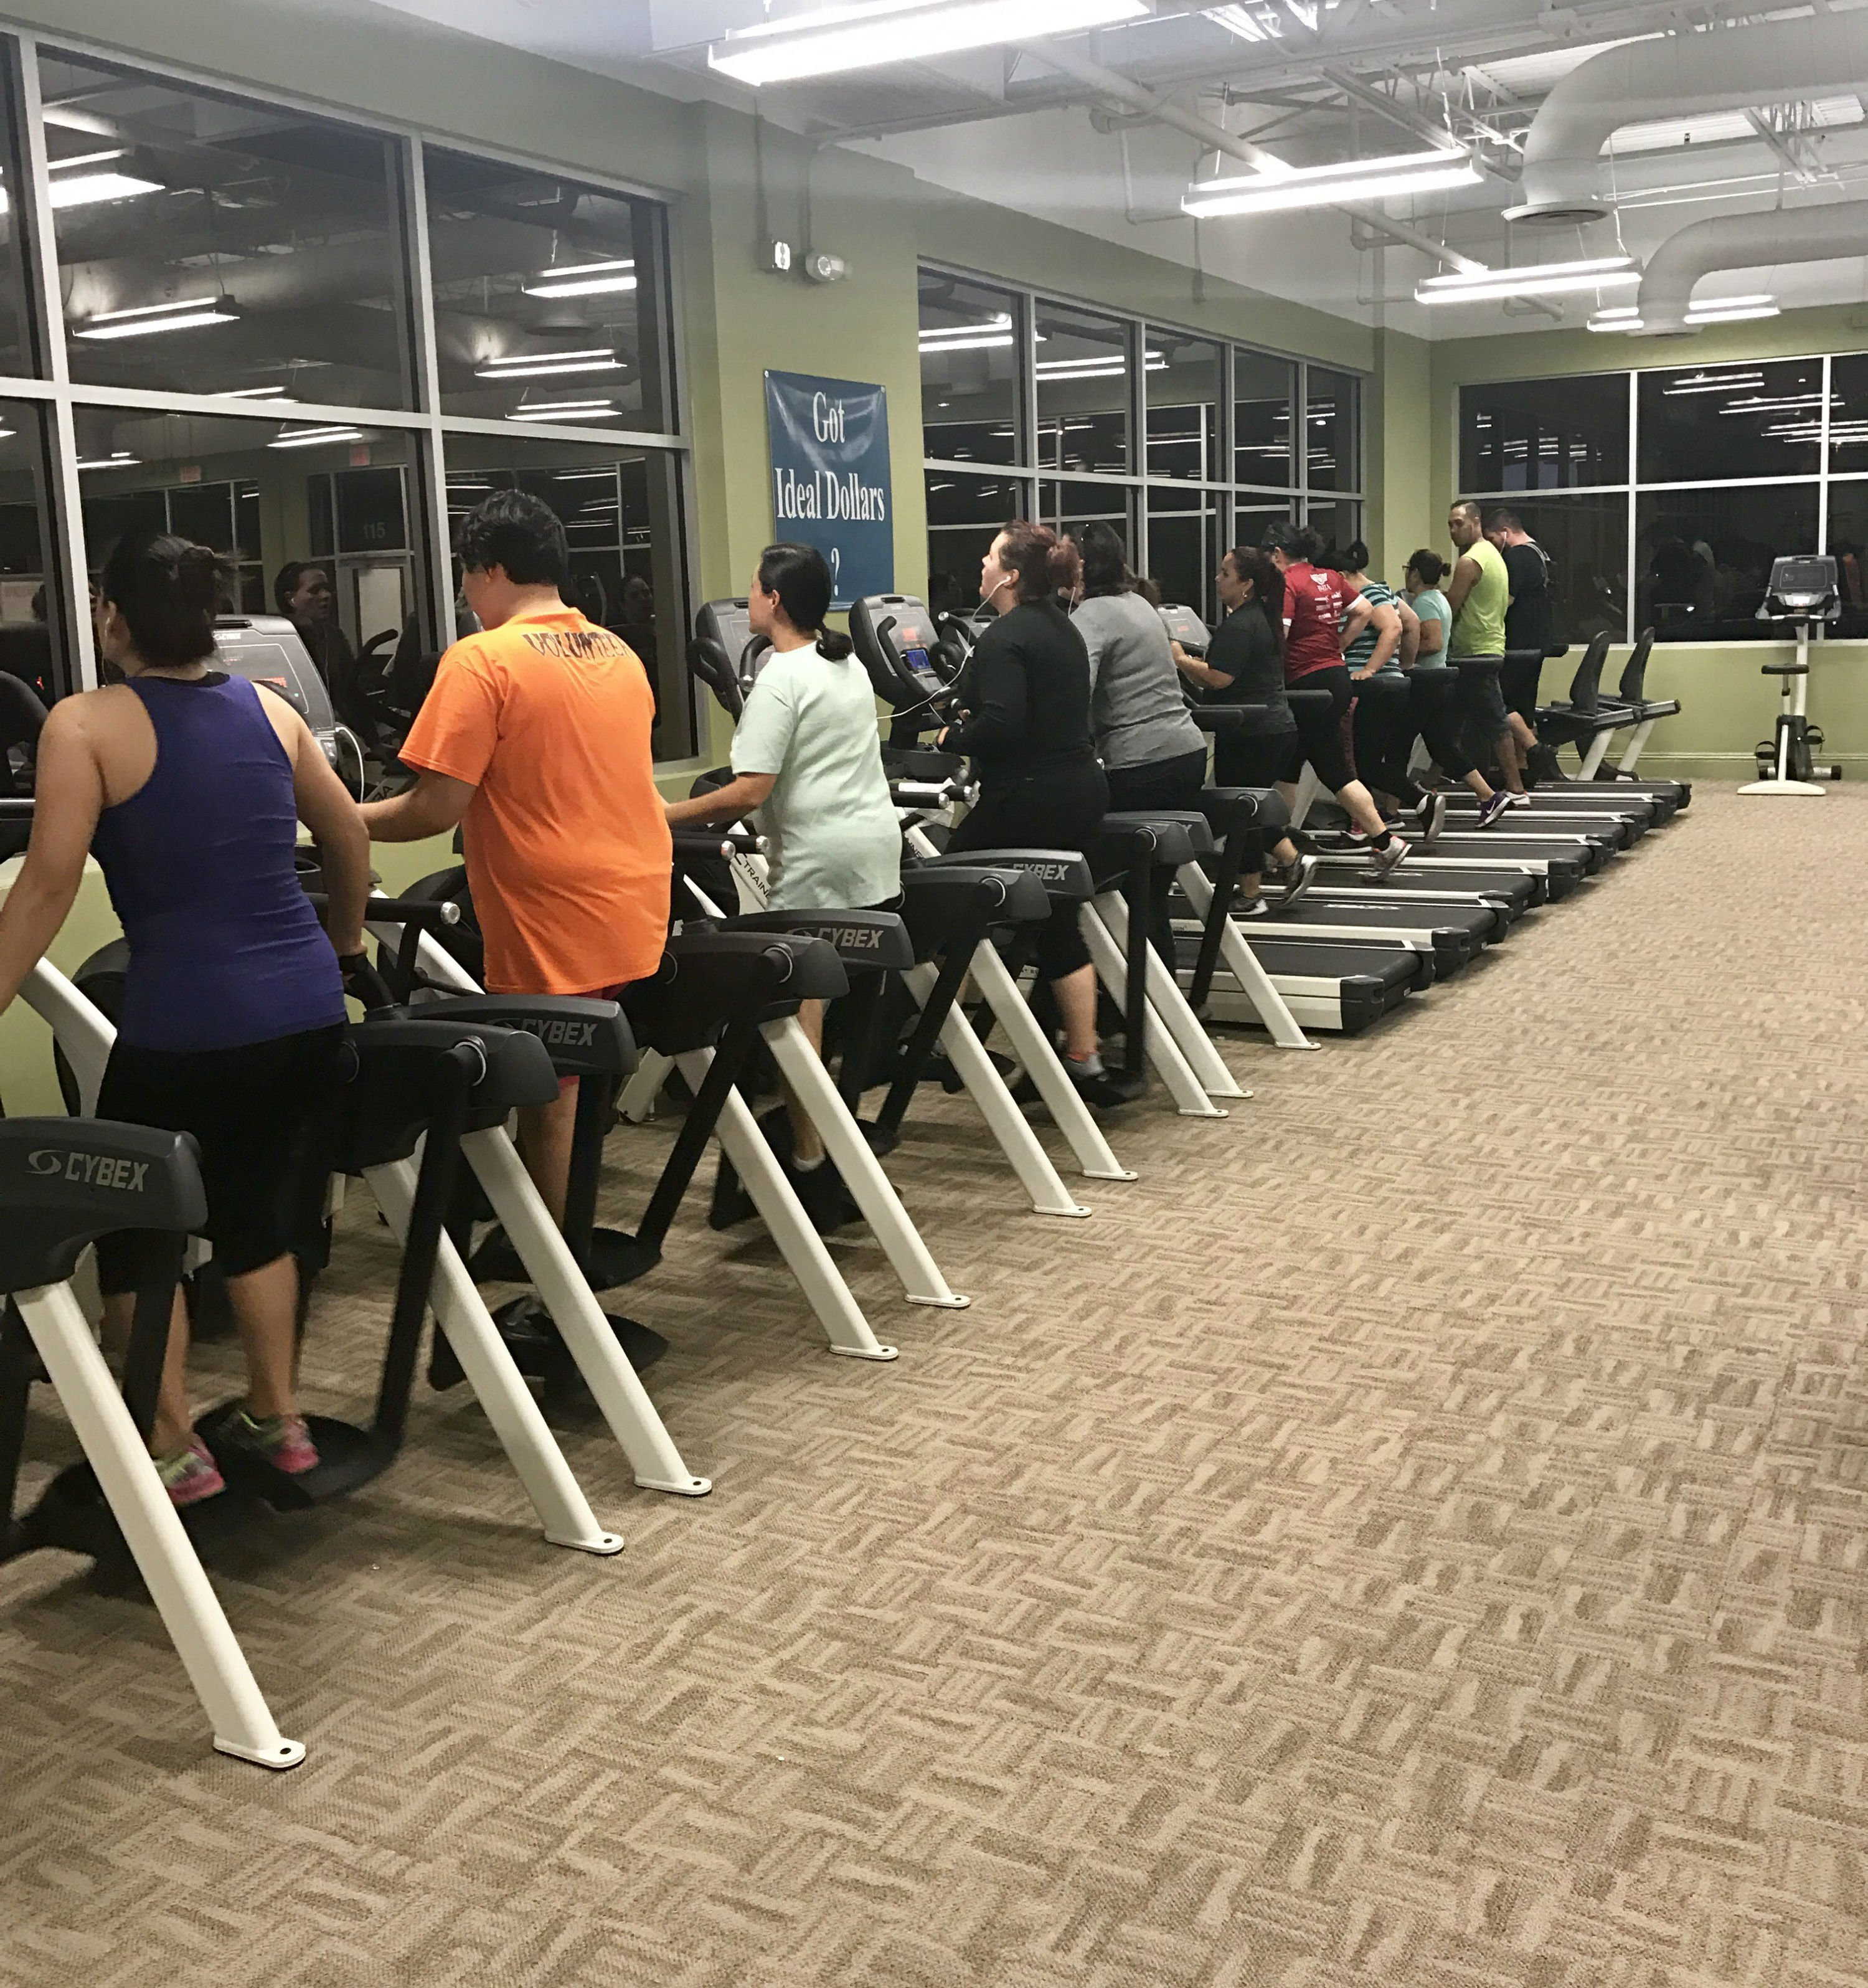 People using workout machines